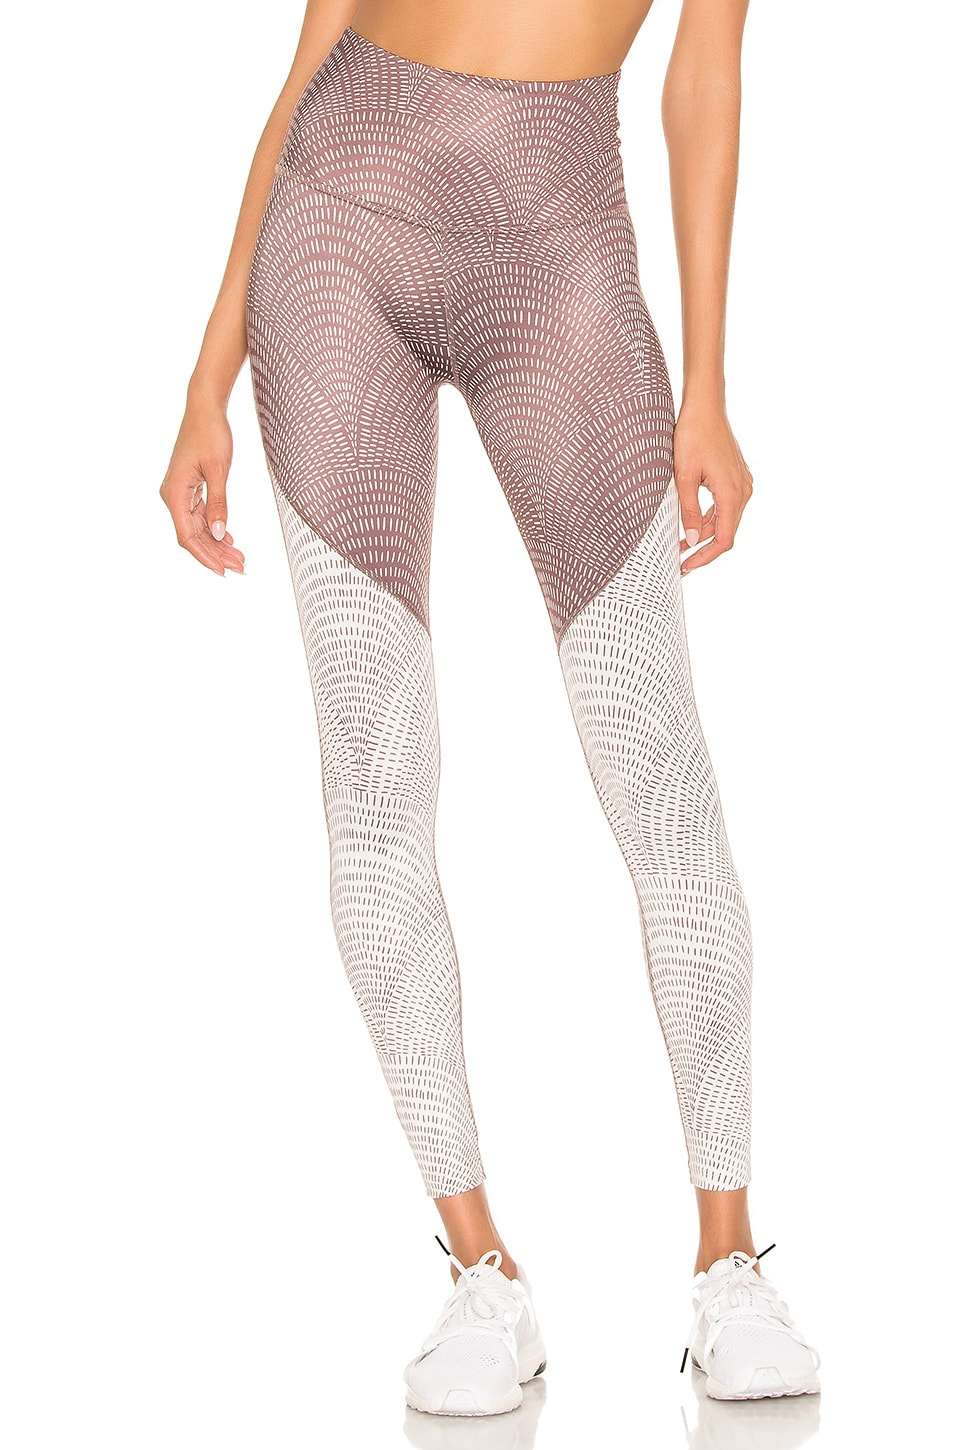 Beyond Yoga Lux High Waisted Angled Midi Legging in Etched Fans Blocked